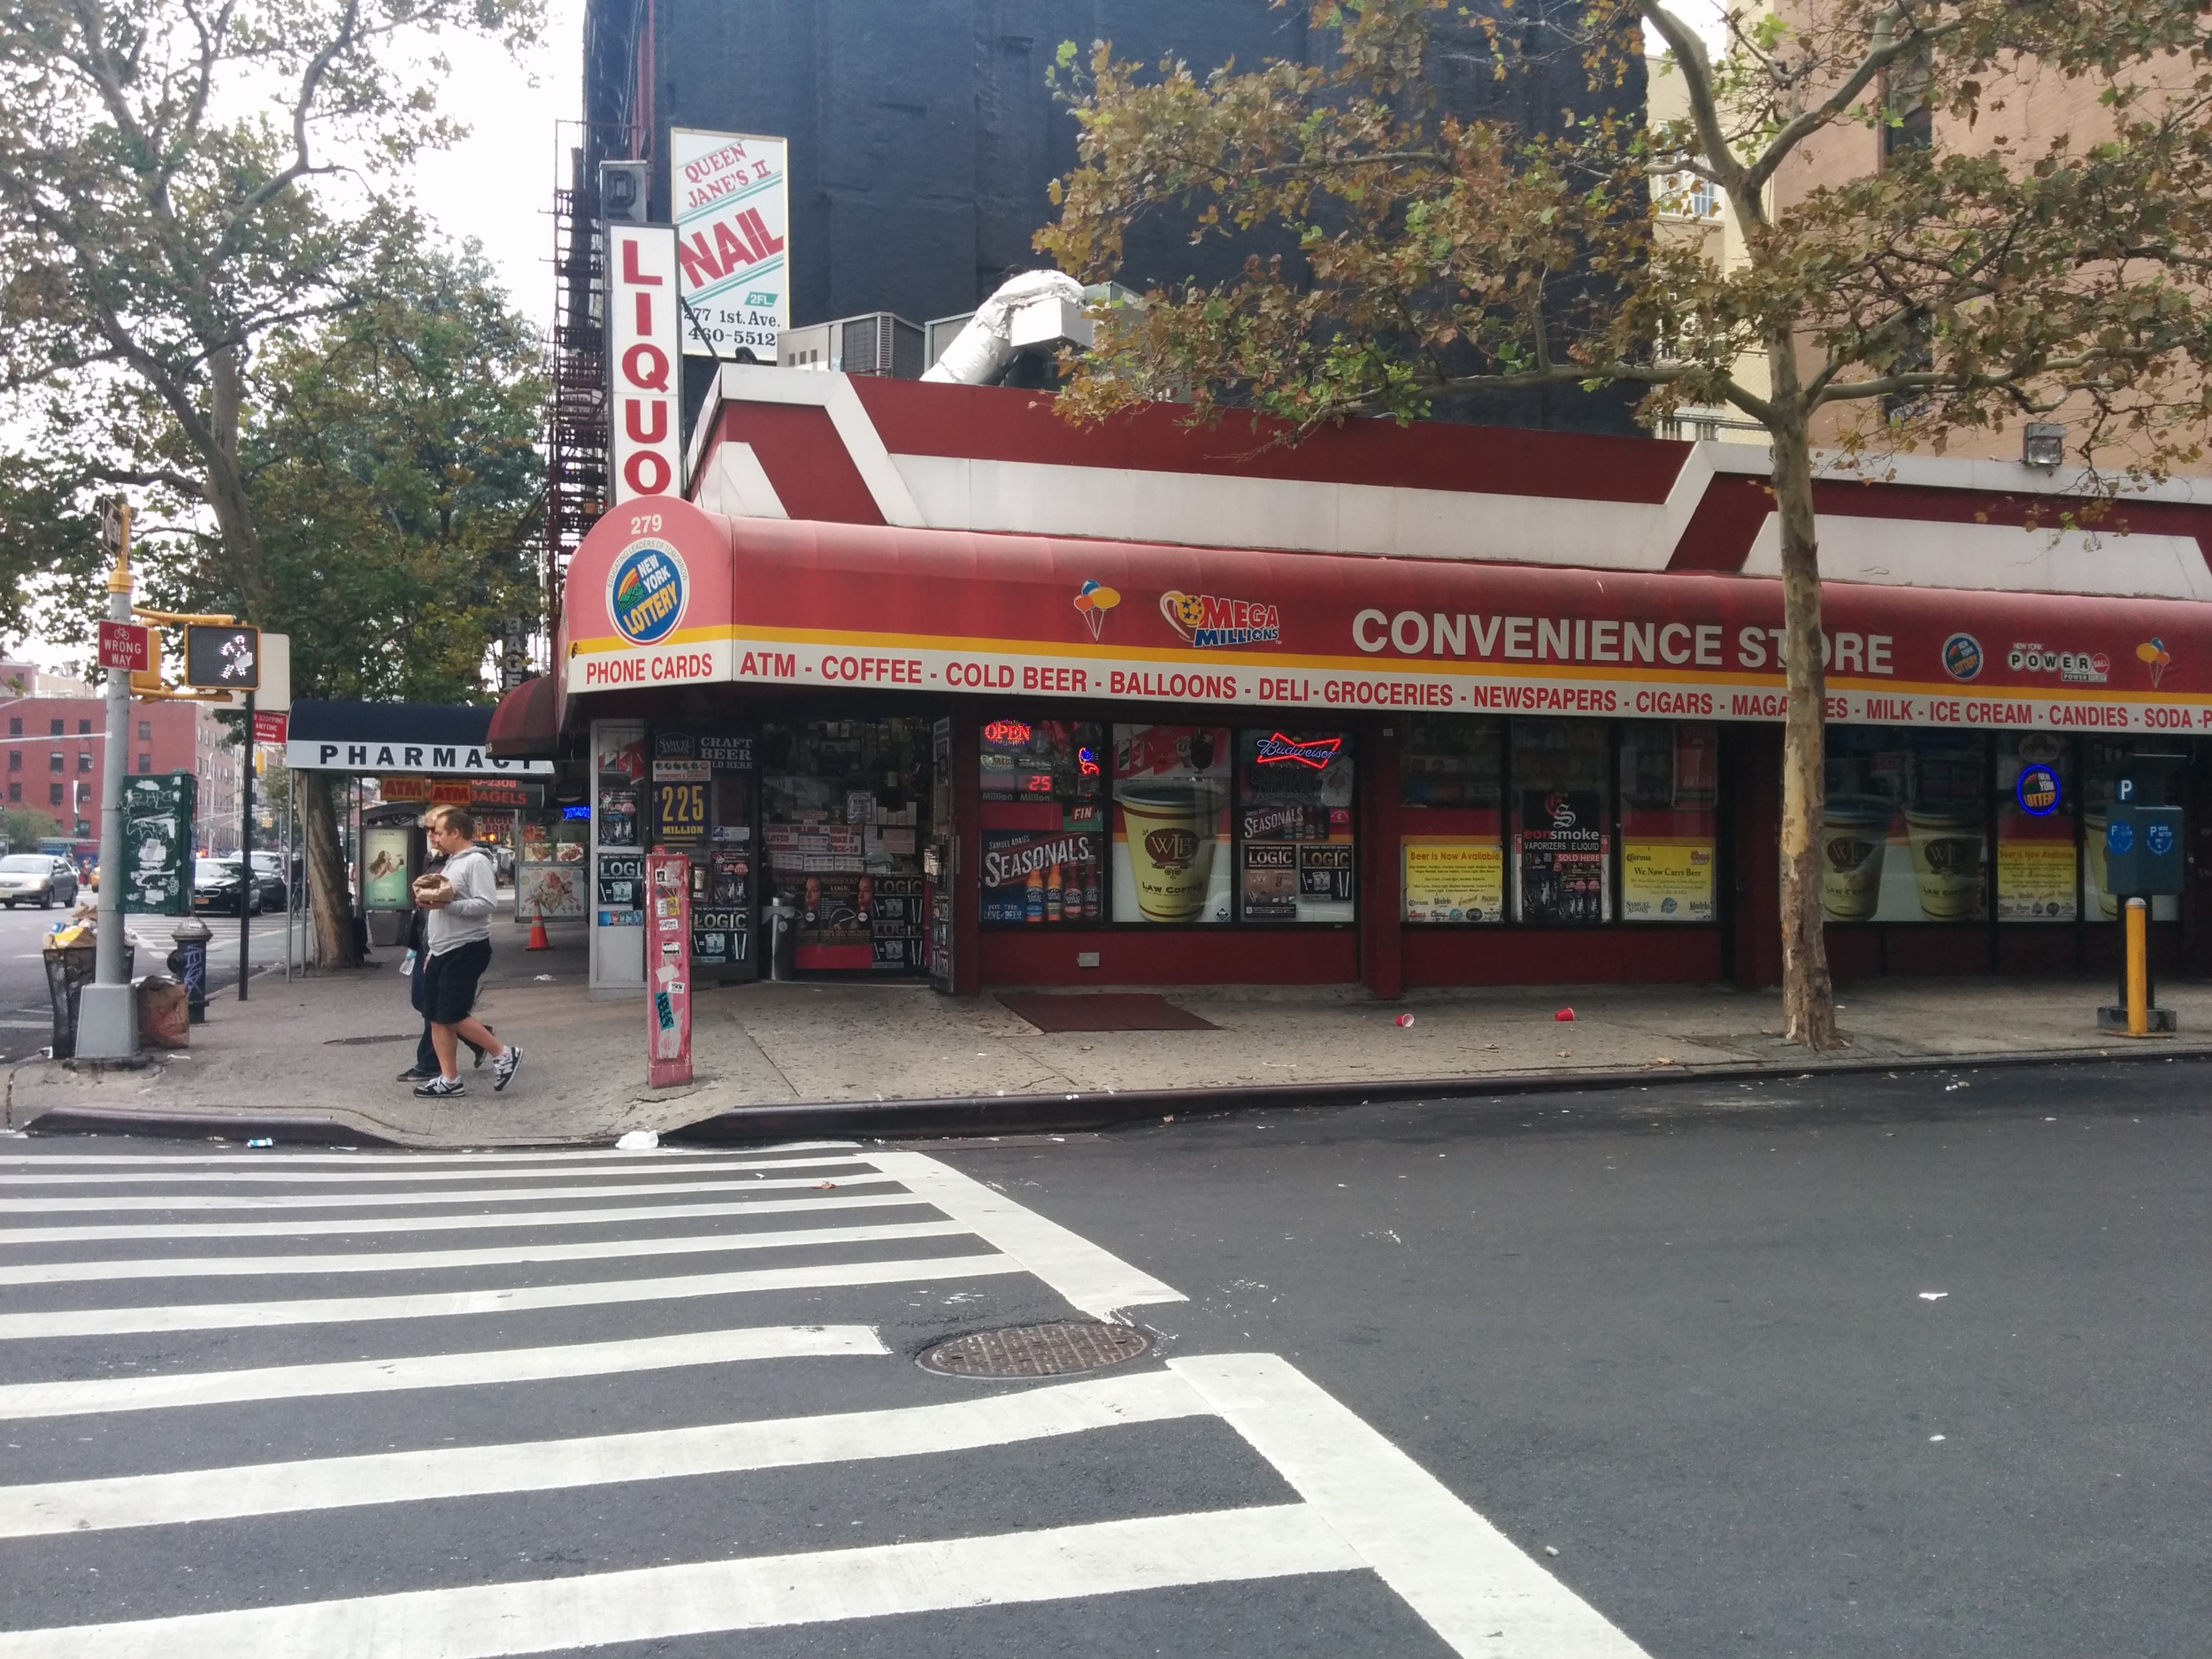 Bad Sign 1 - Your shop is called 'Convenience Store'? Really?